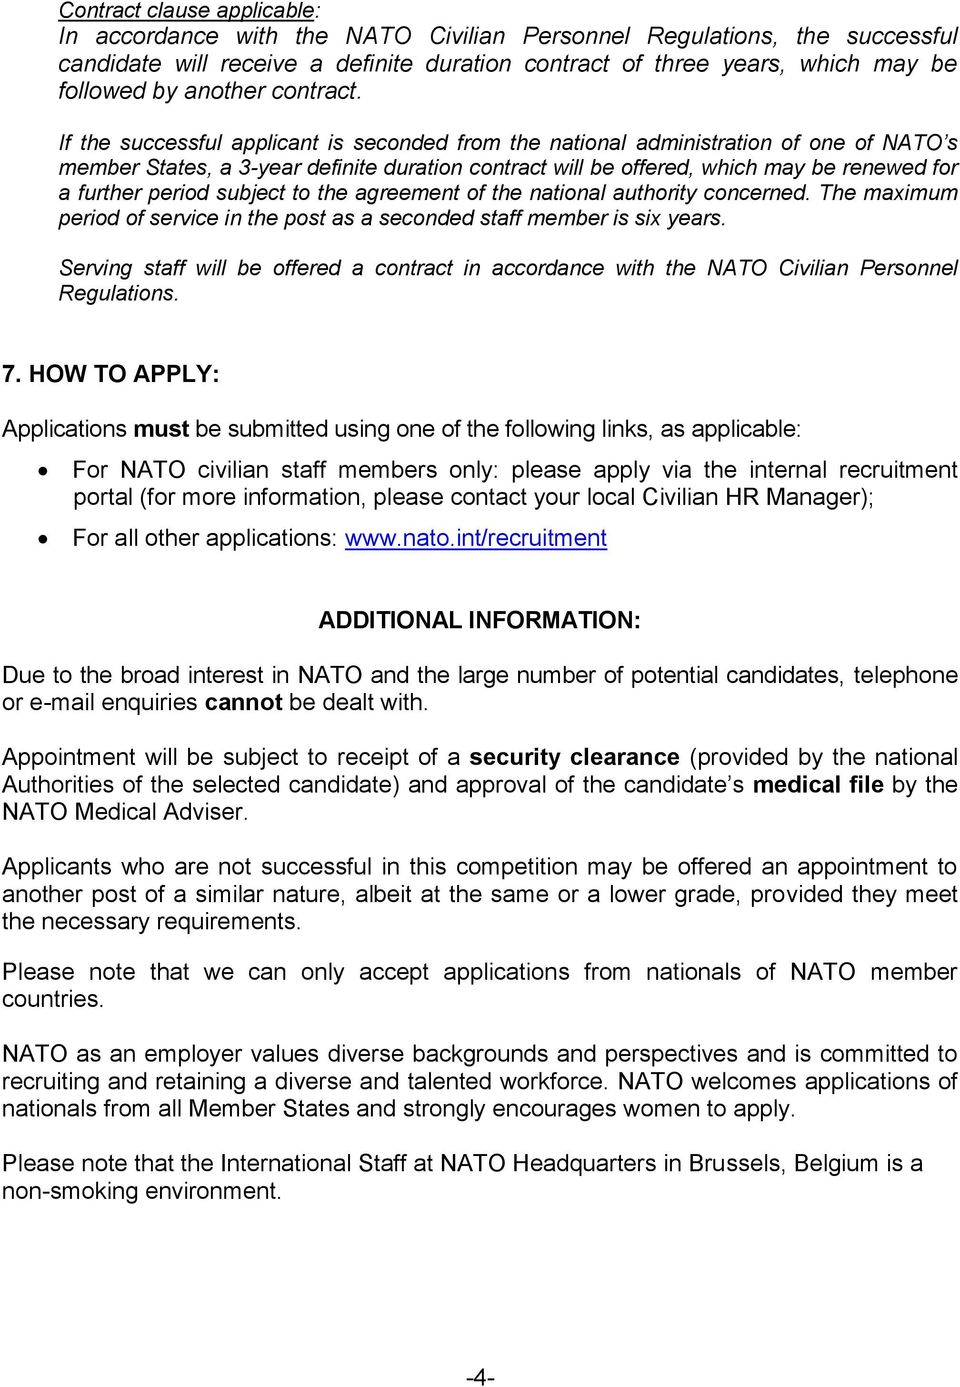 If the successful applicant is seconded from the national administration of one of NATO s member States, a 3-year definite duration contract will be offered, which may be renewed for a further period